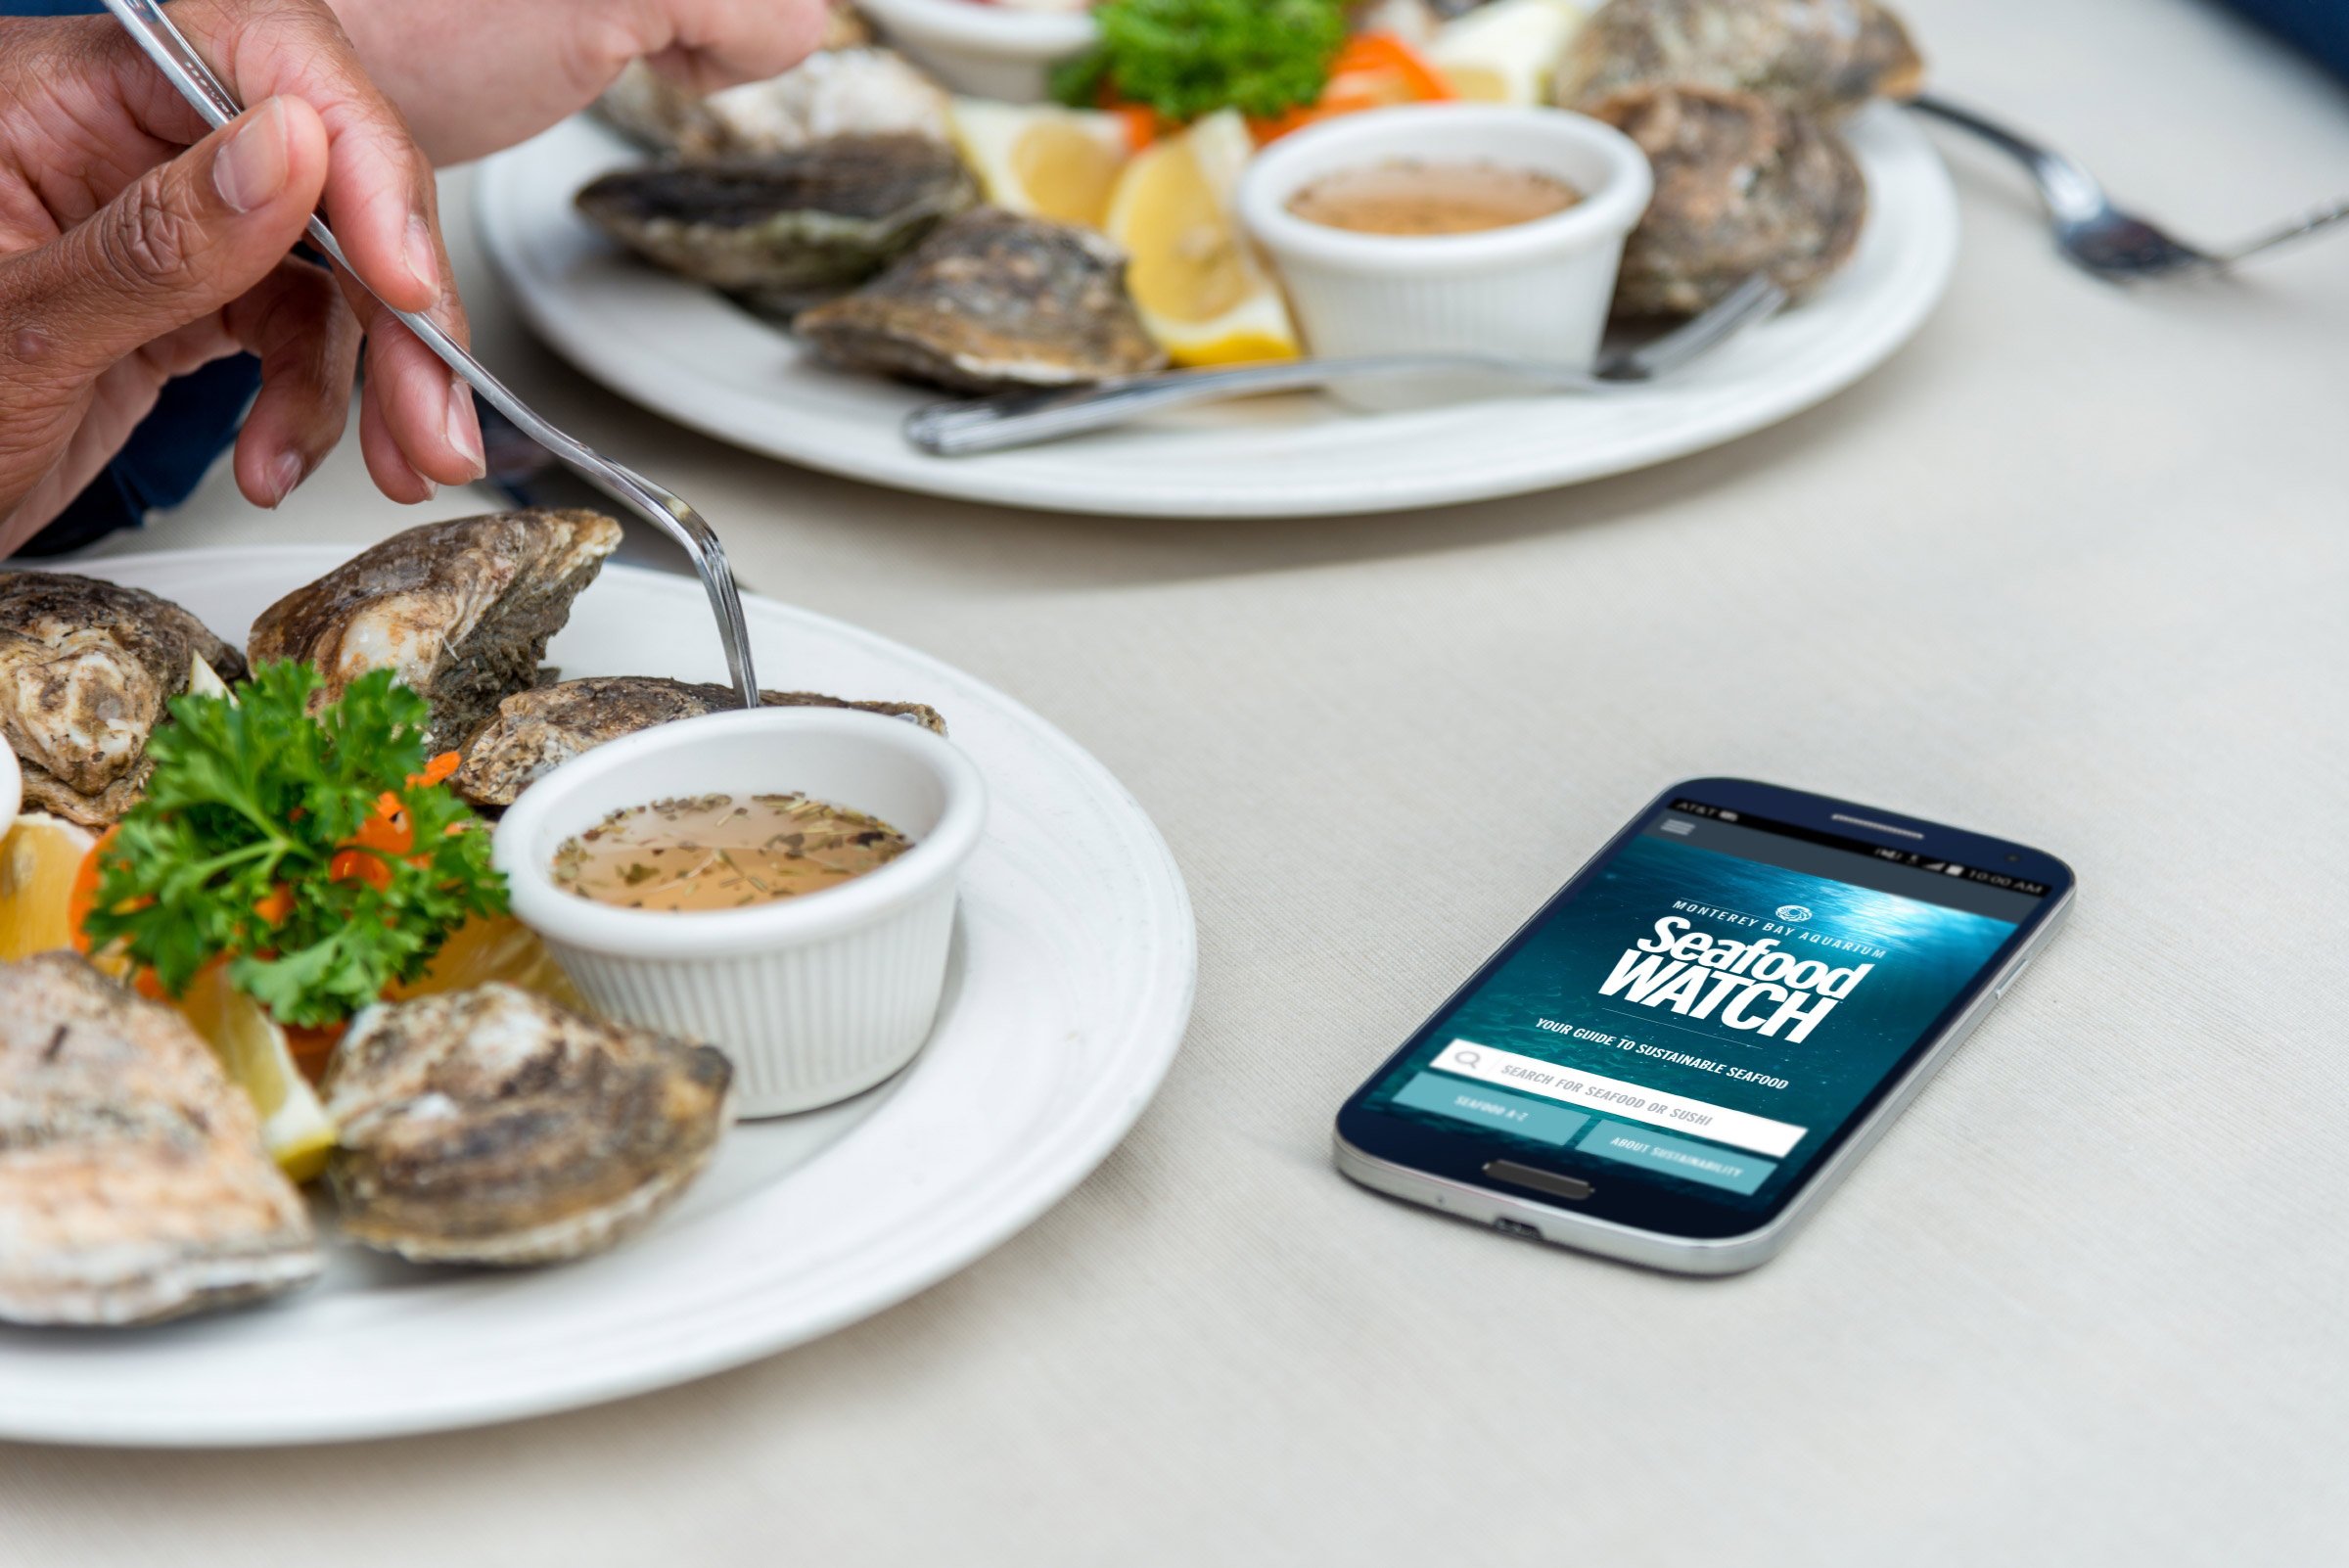 Seafood Watch app on a smartphone